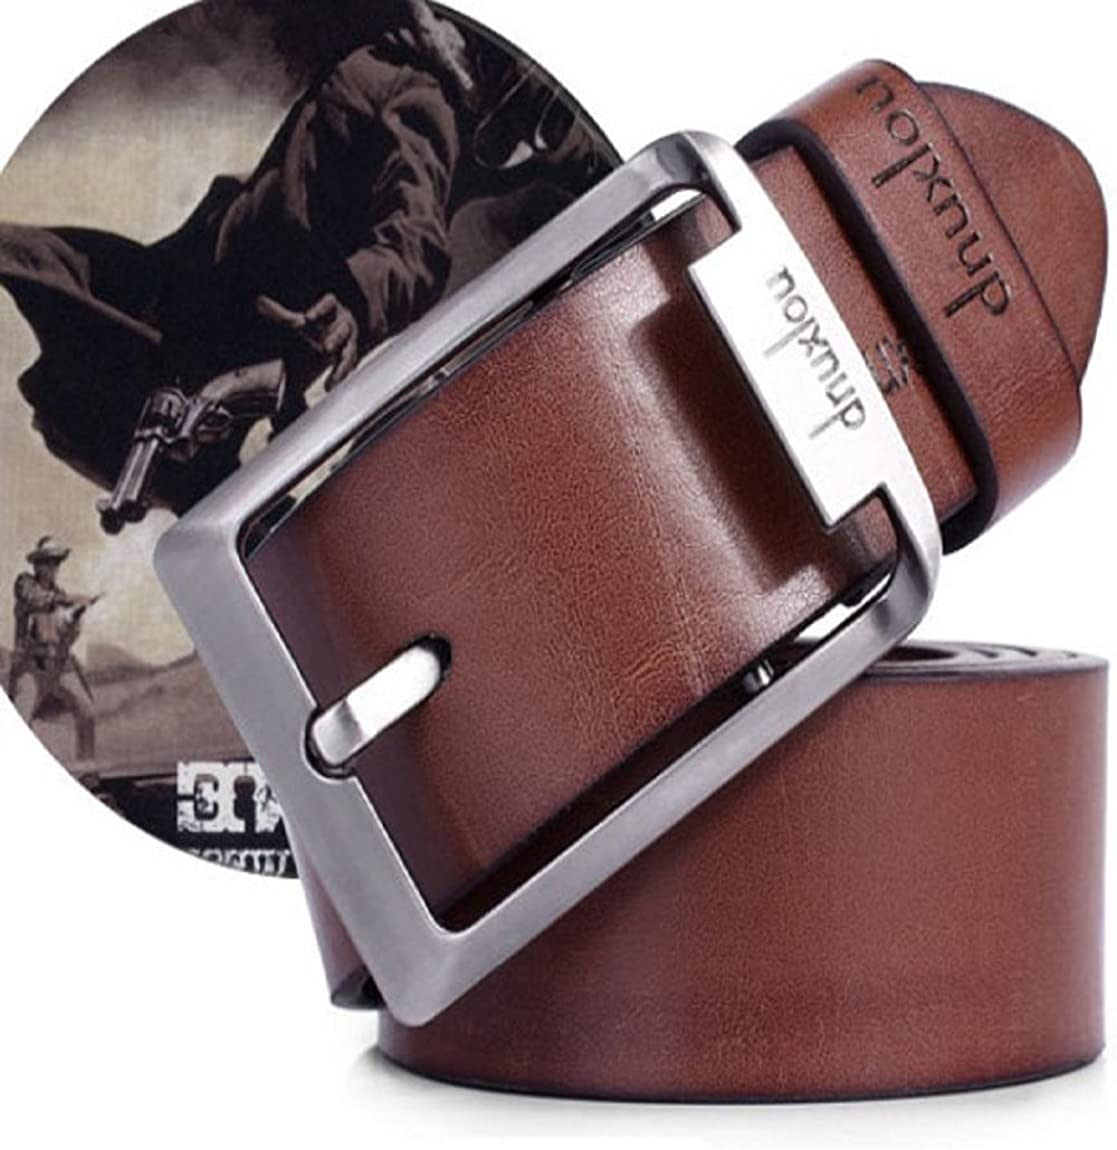 DKmagic New Mens Leather Single Prong Belt Business Casual Dress Metal Buckle